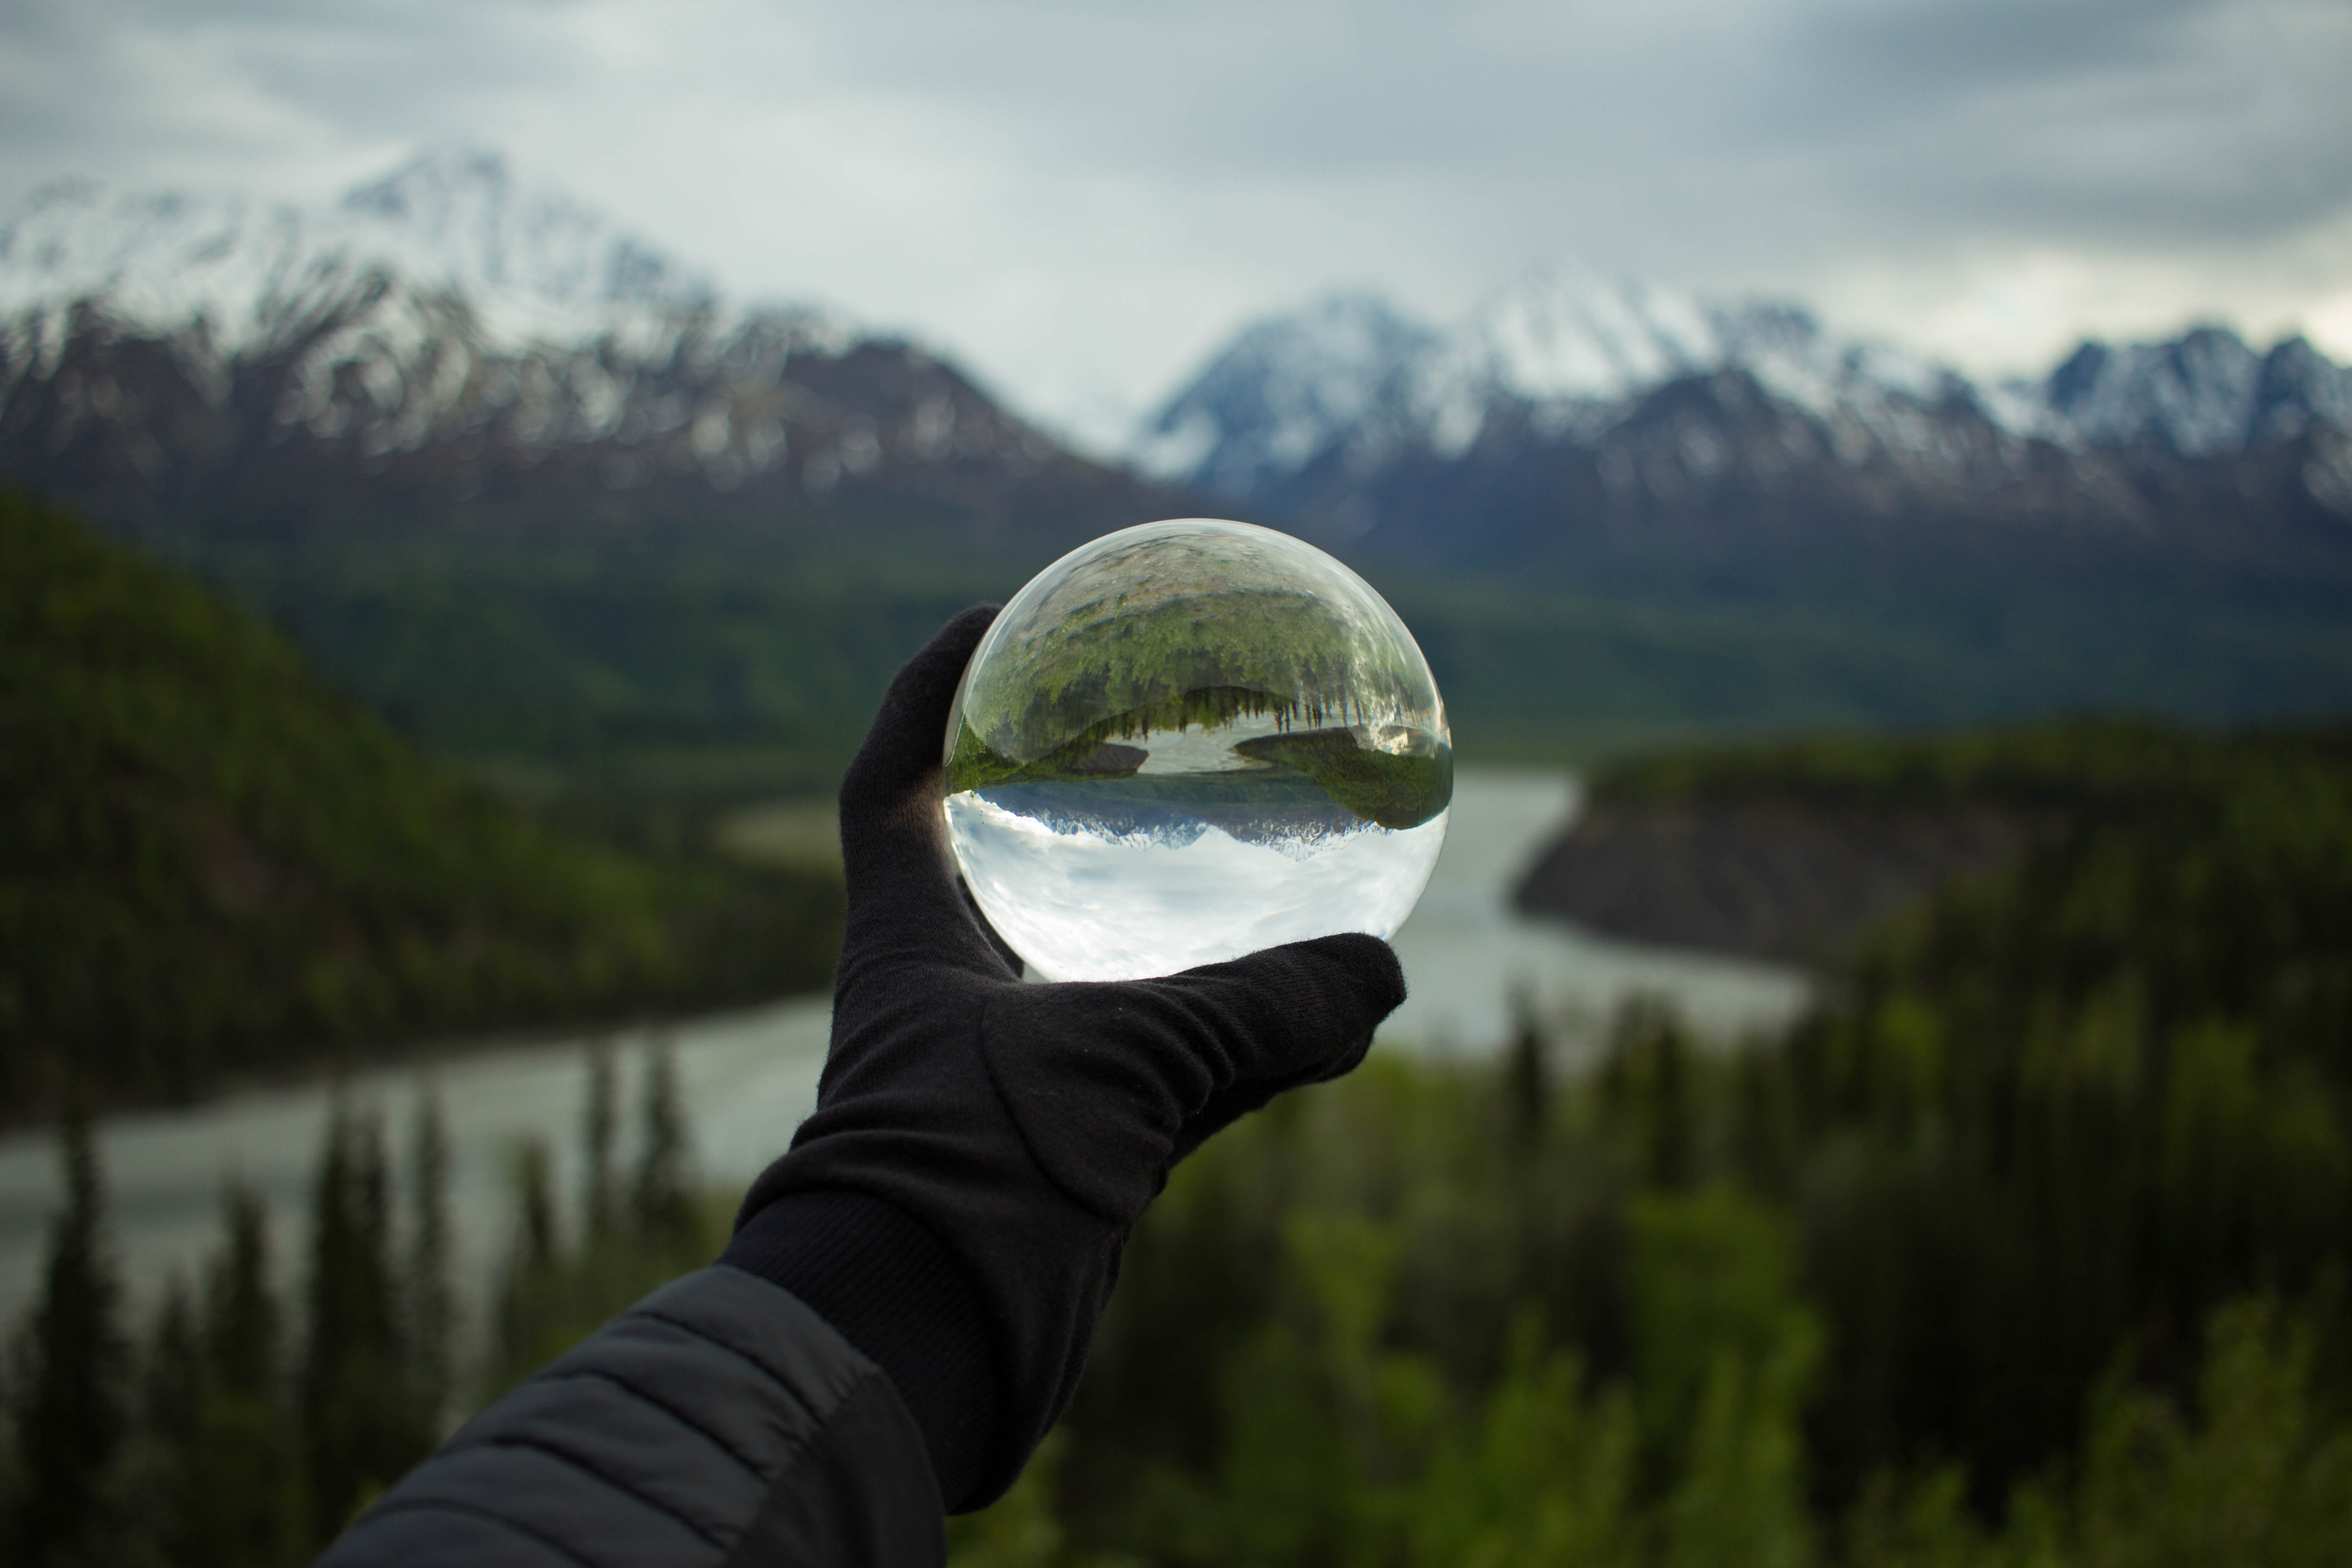 A person's hand in a glove holding a large glass ball against the backdrop of snowy mountains